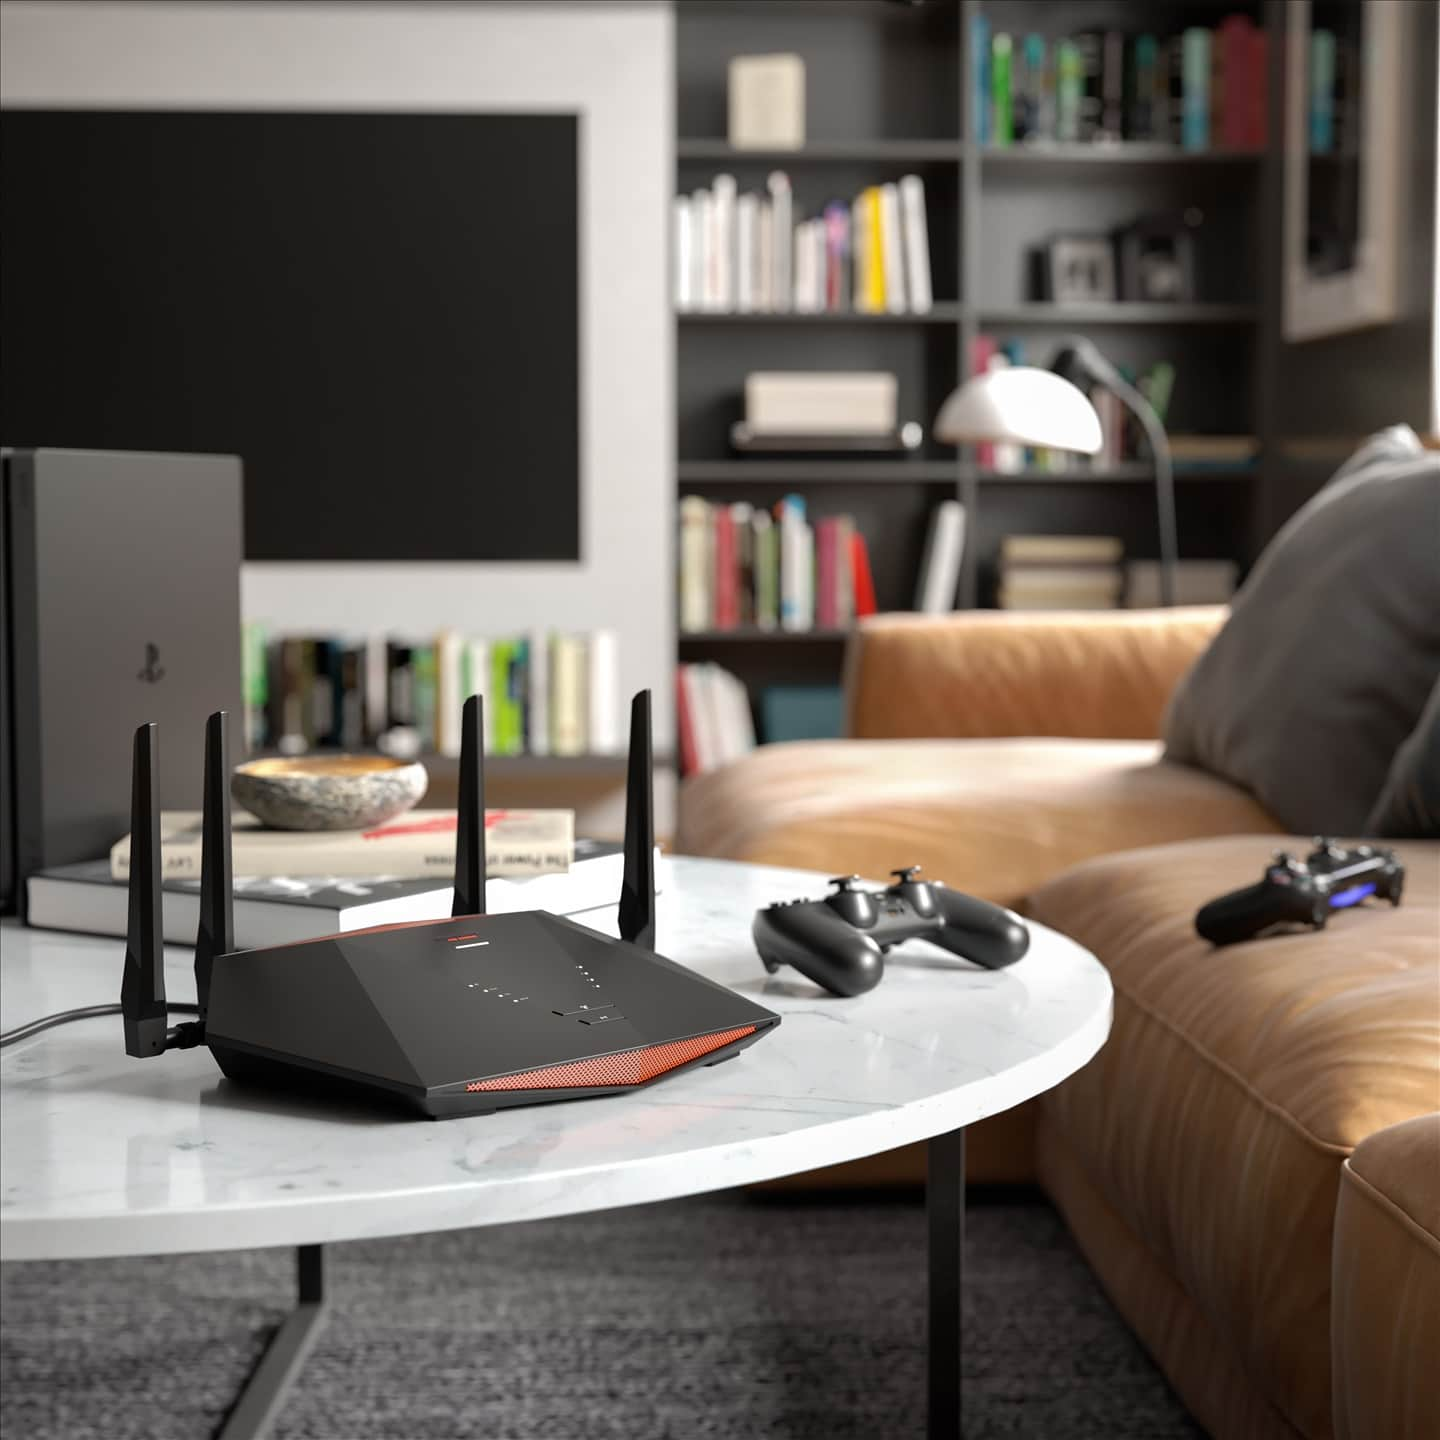 NETGEAR Nighthawk Pro Gaming XR1000 WiFi 6 gaming router is coming to Australia next month